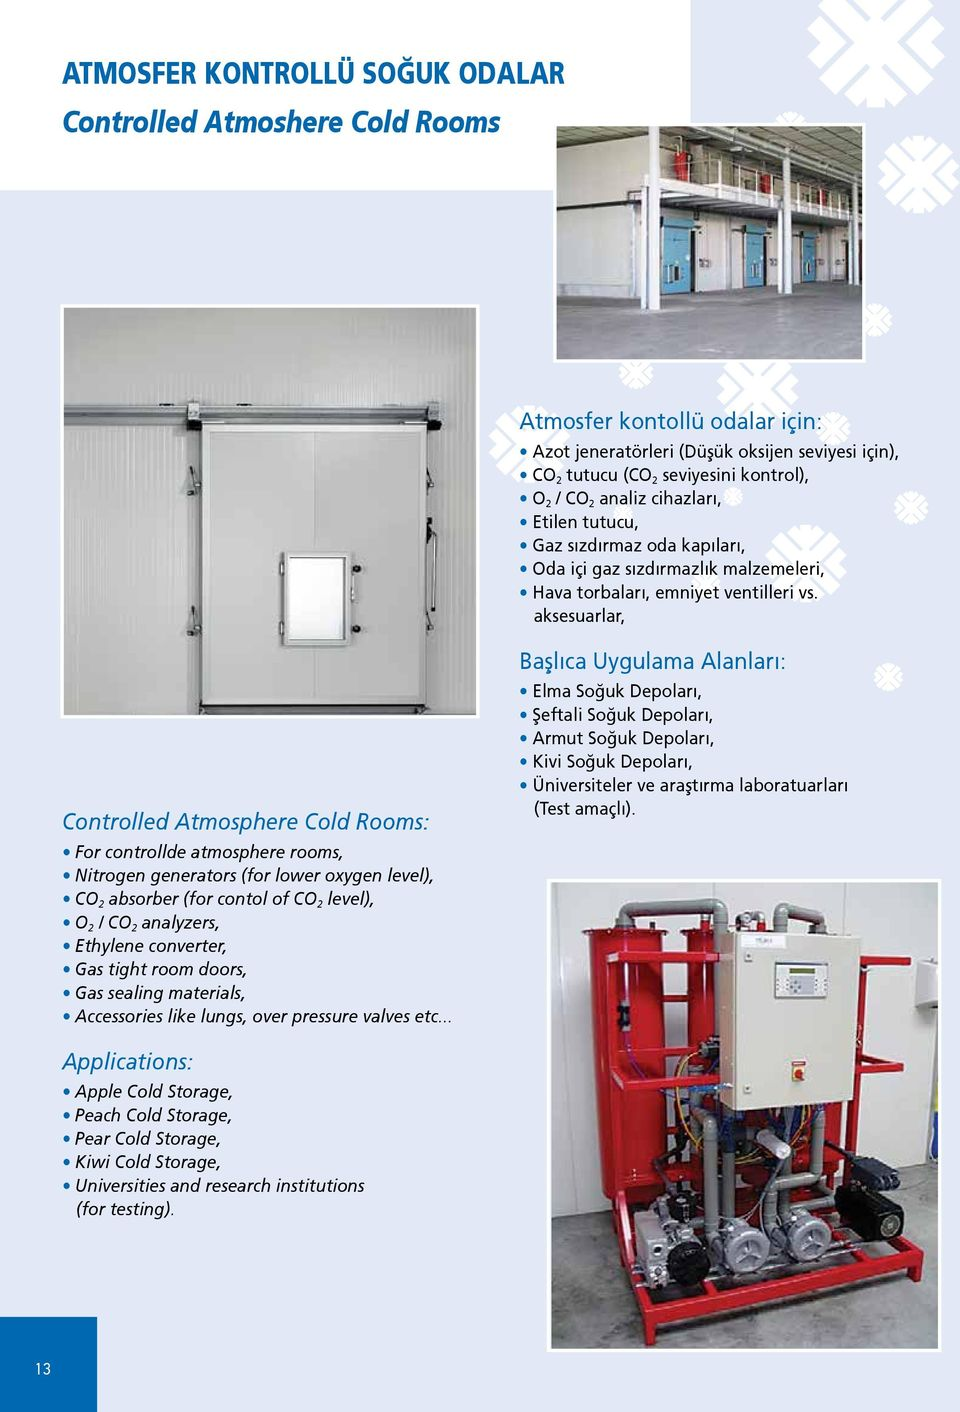 aksesuarlar, Controlled Atmosphere Cold Rooms: For controllde atmosphere rooms, Nitrogen generators (for lower oxygen level), CO 2 absorber (for contol of CO 2 level), O 2 / CO 2 analyzers, Ethylene